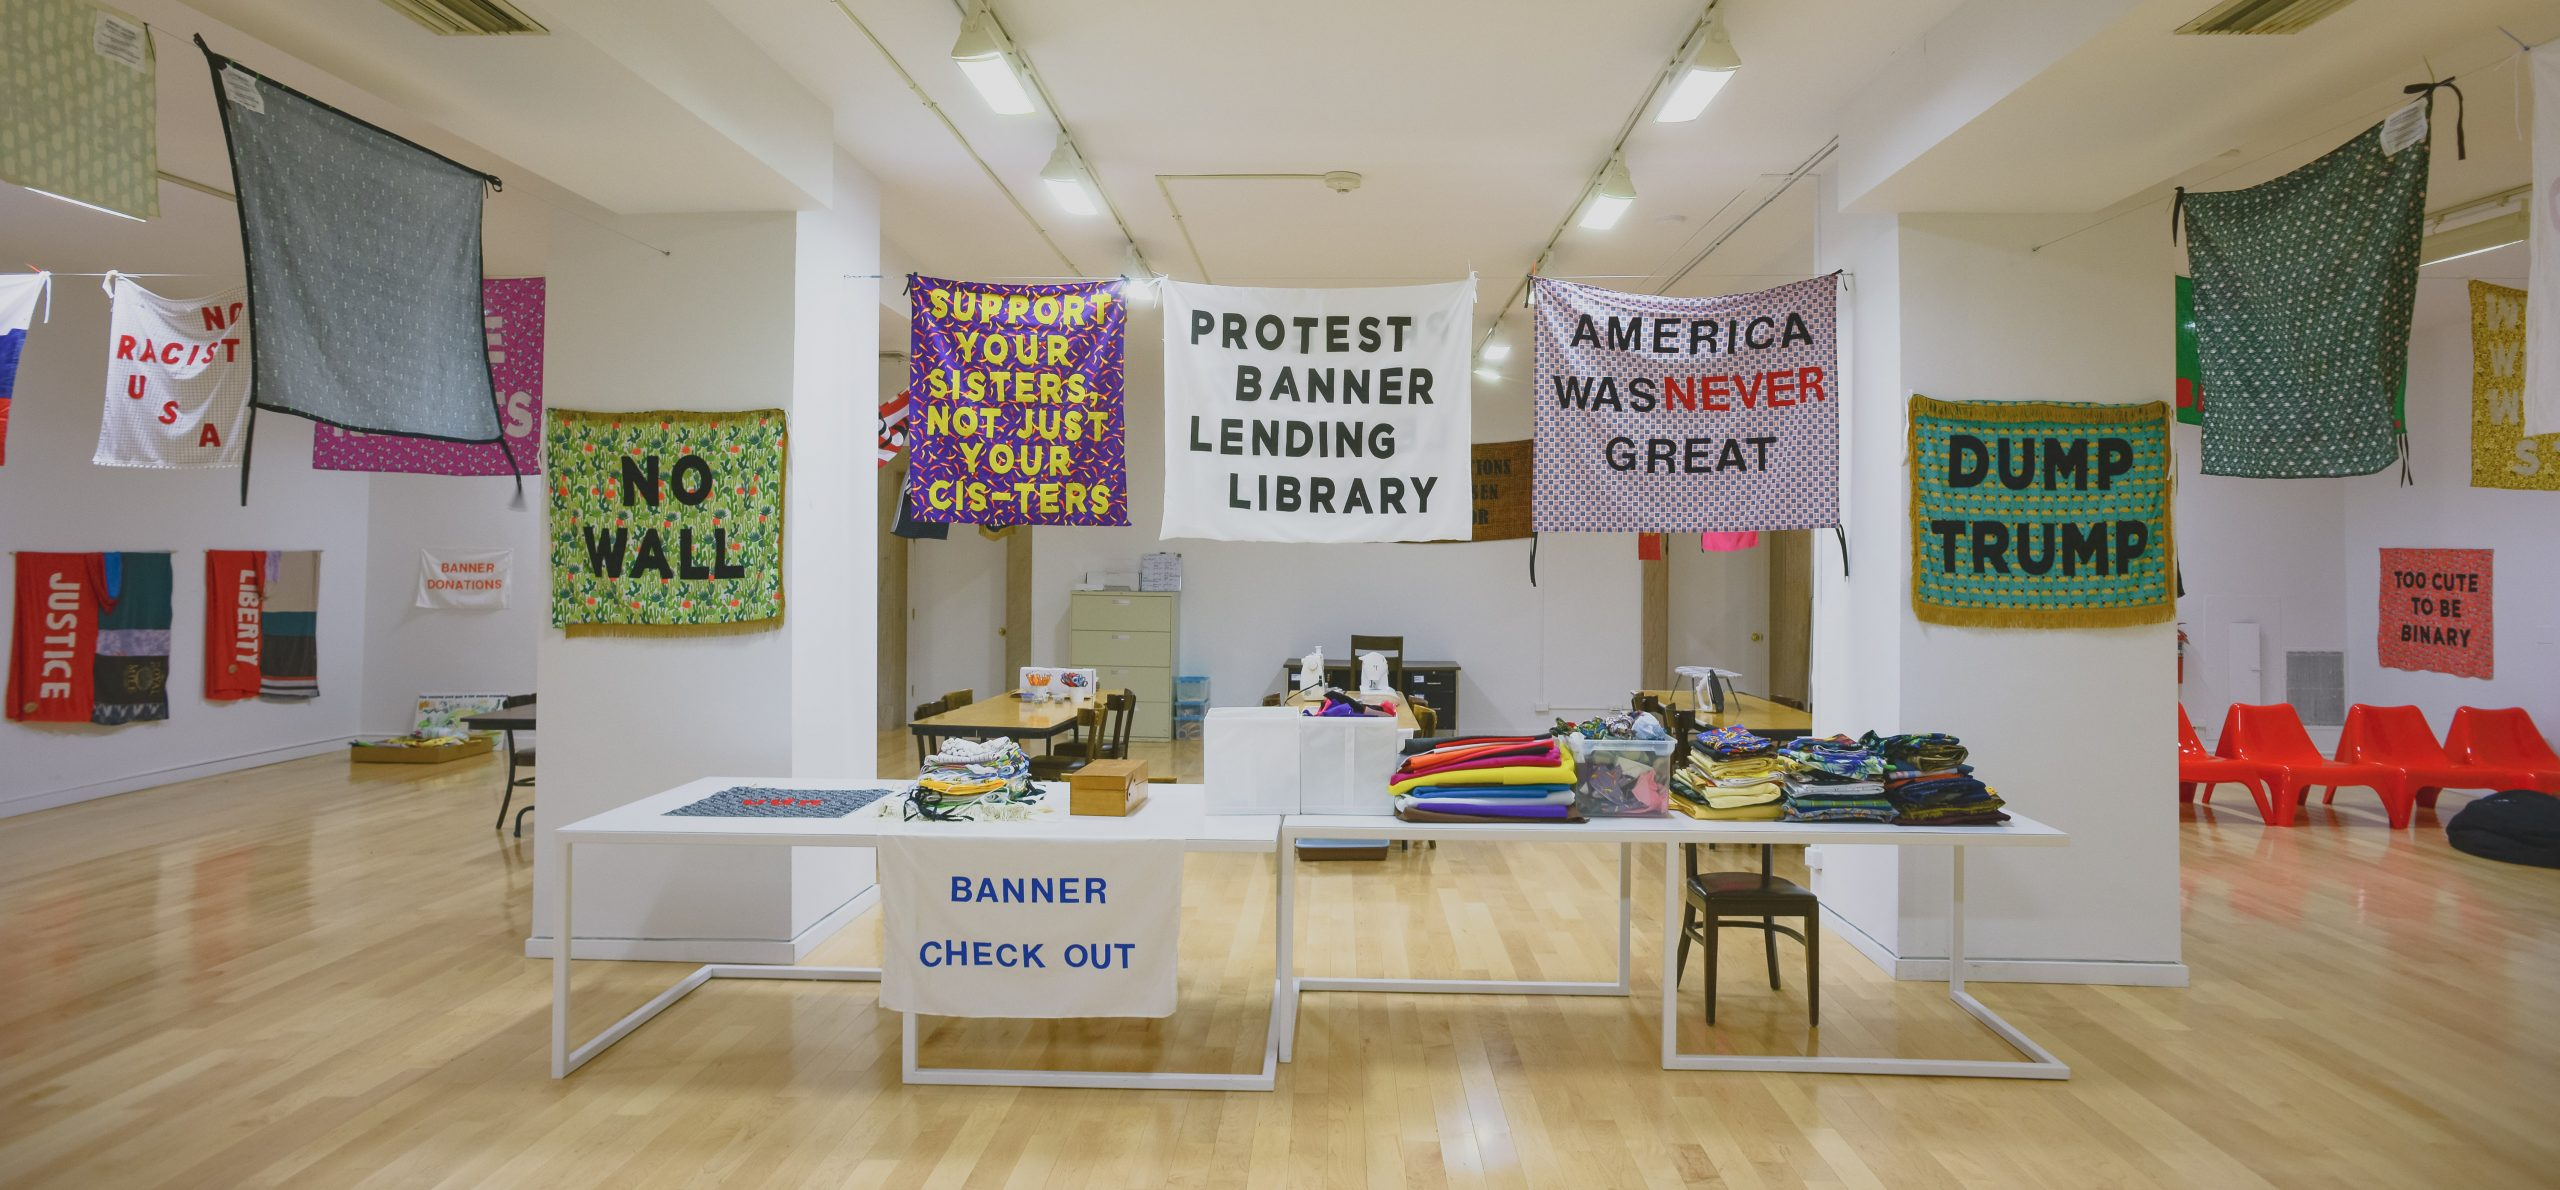 Aram Han Sifuentes, Protest Banner Learning Library Installation at the Chicago Cultural Center, 2017.